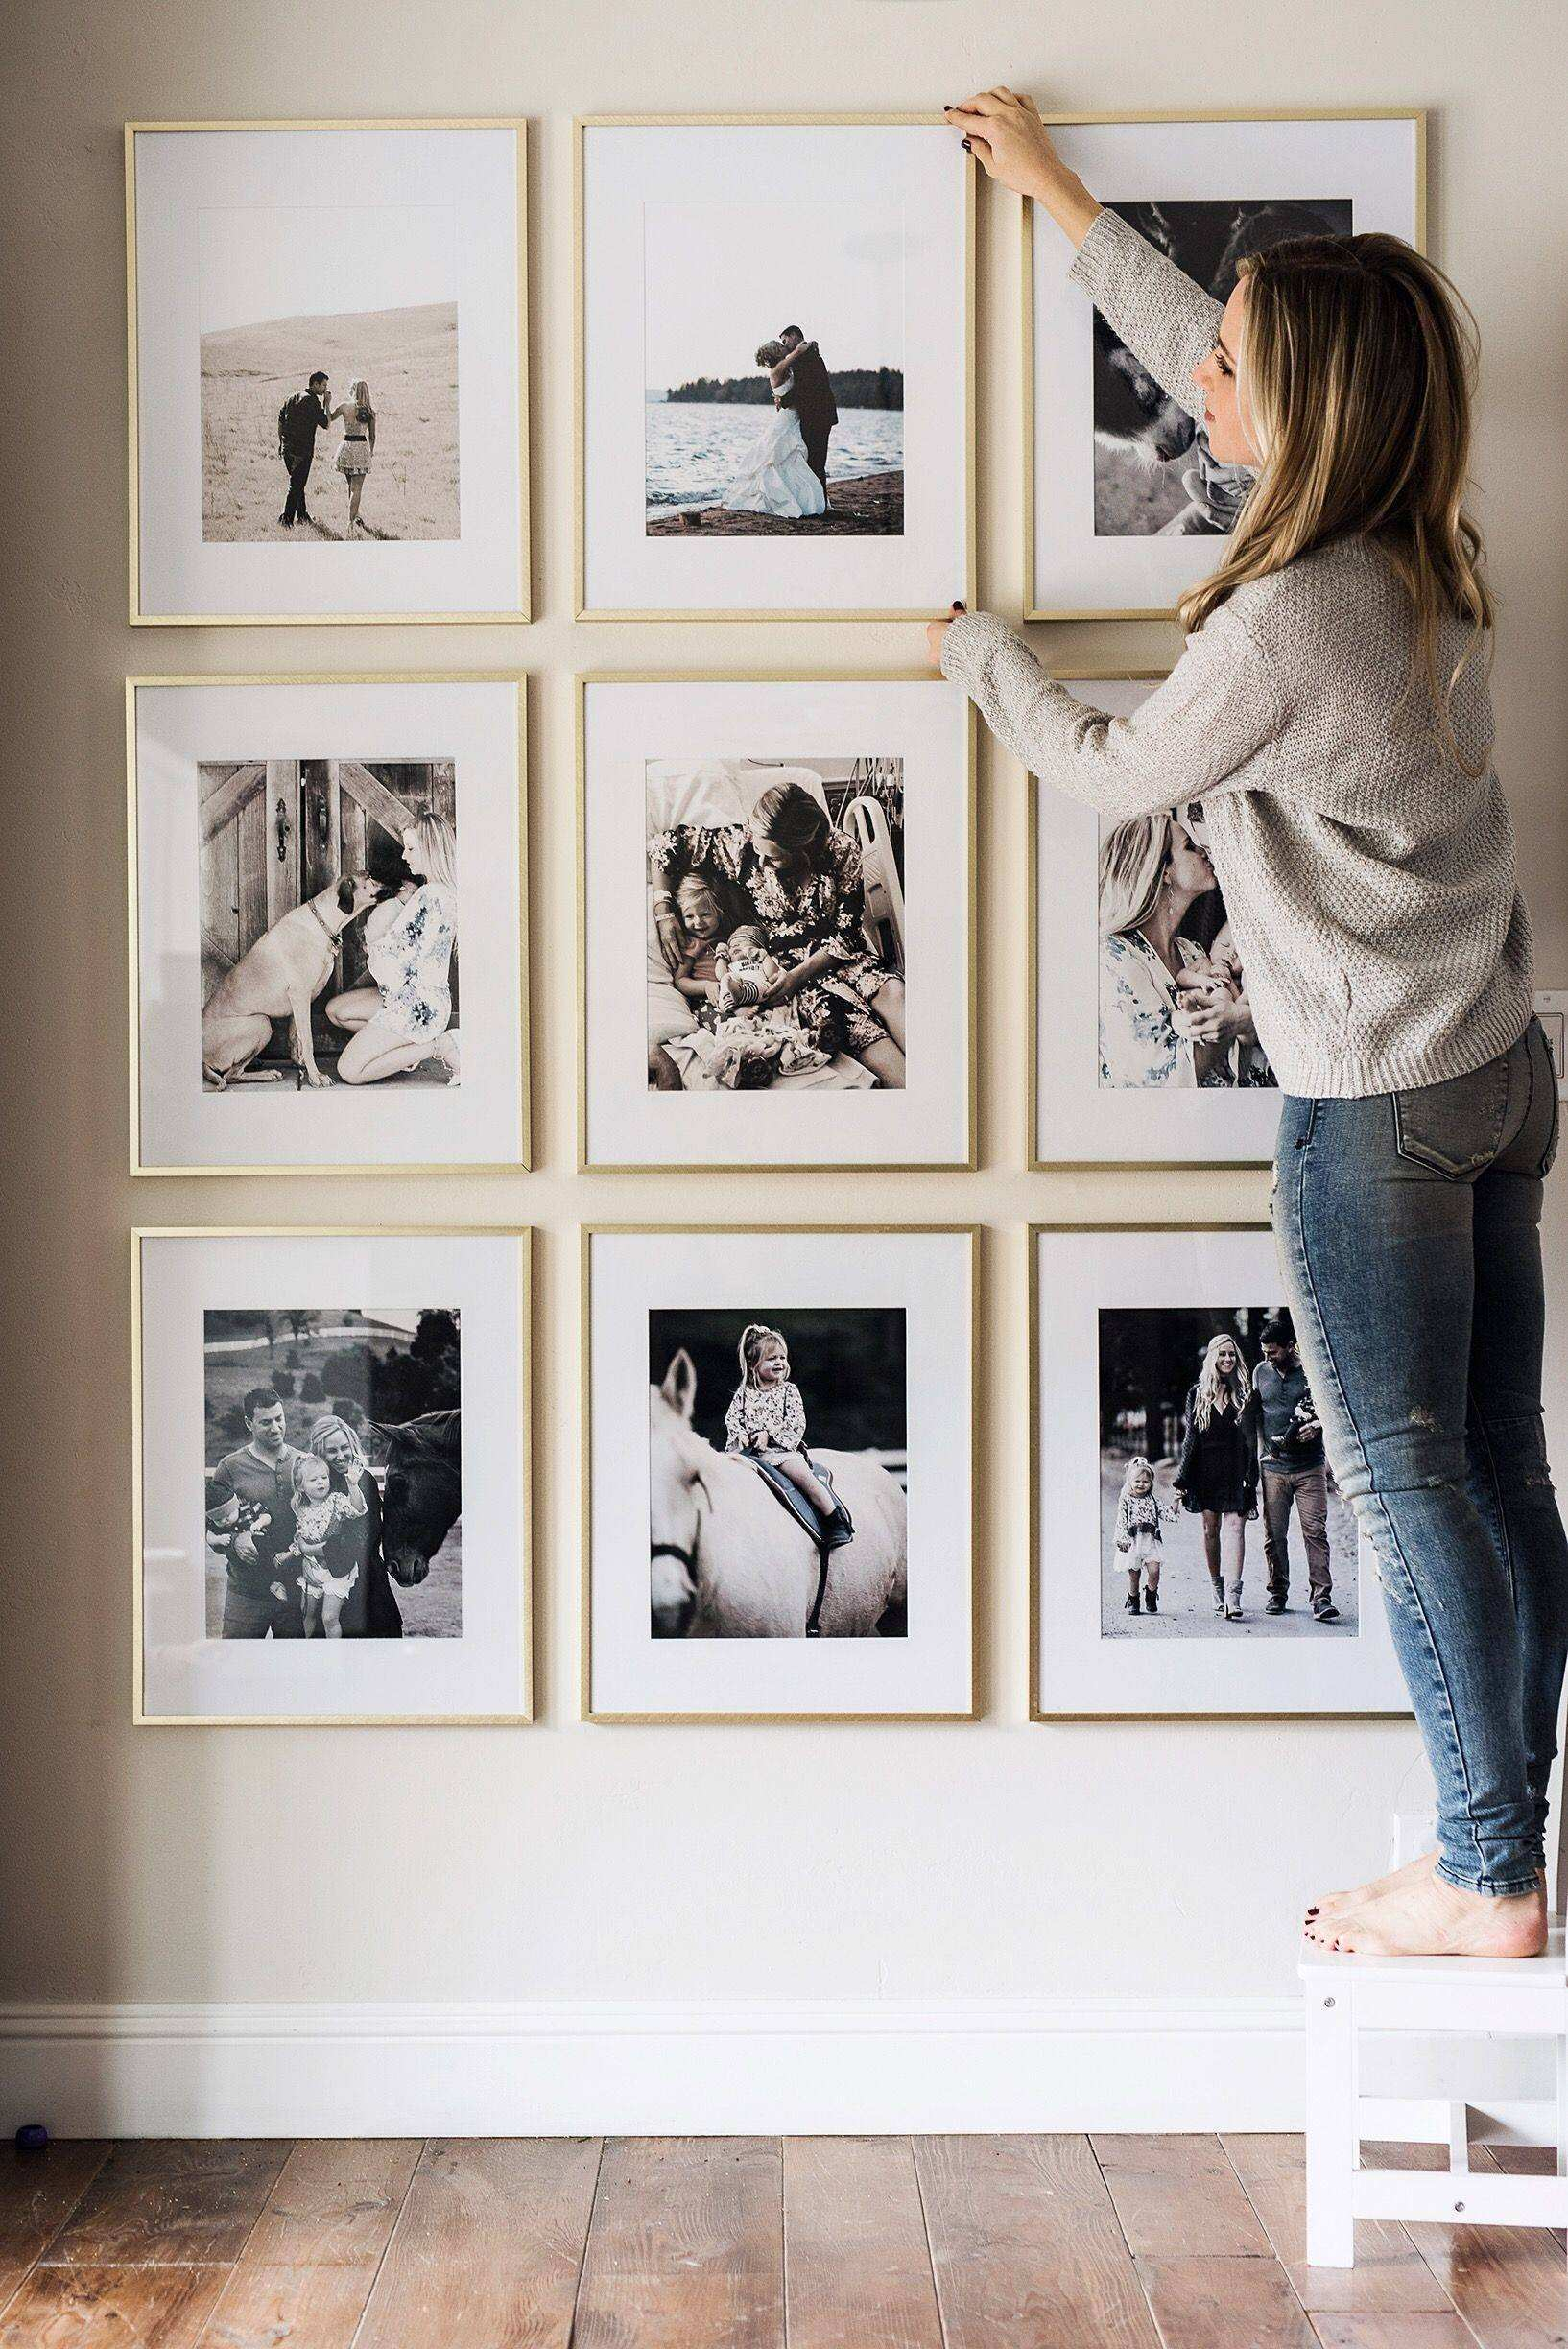 40 New Big Wall Posters for Bedroom